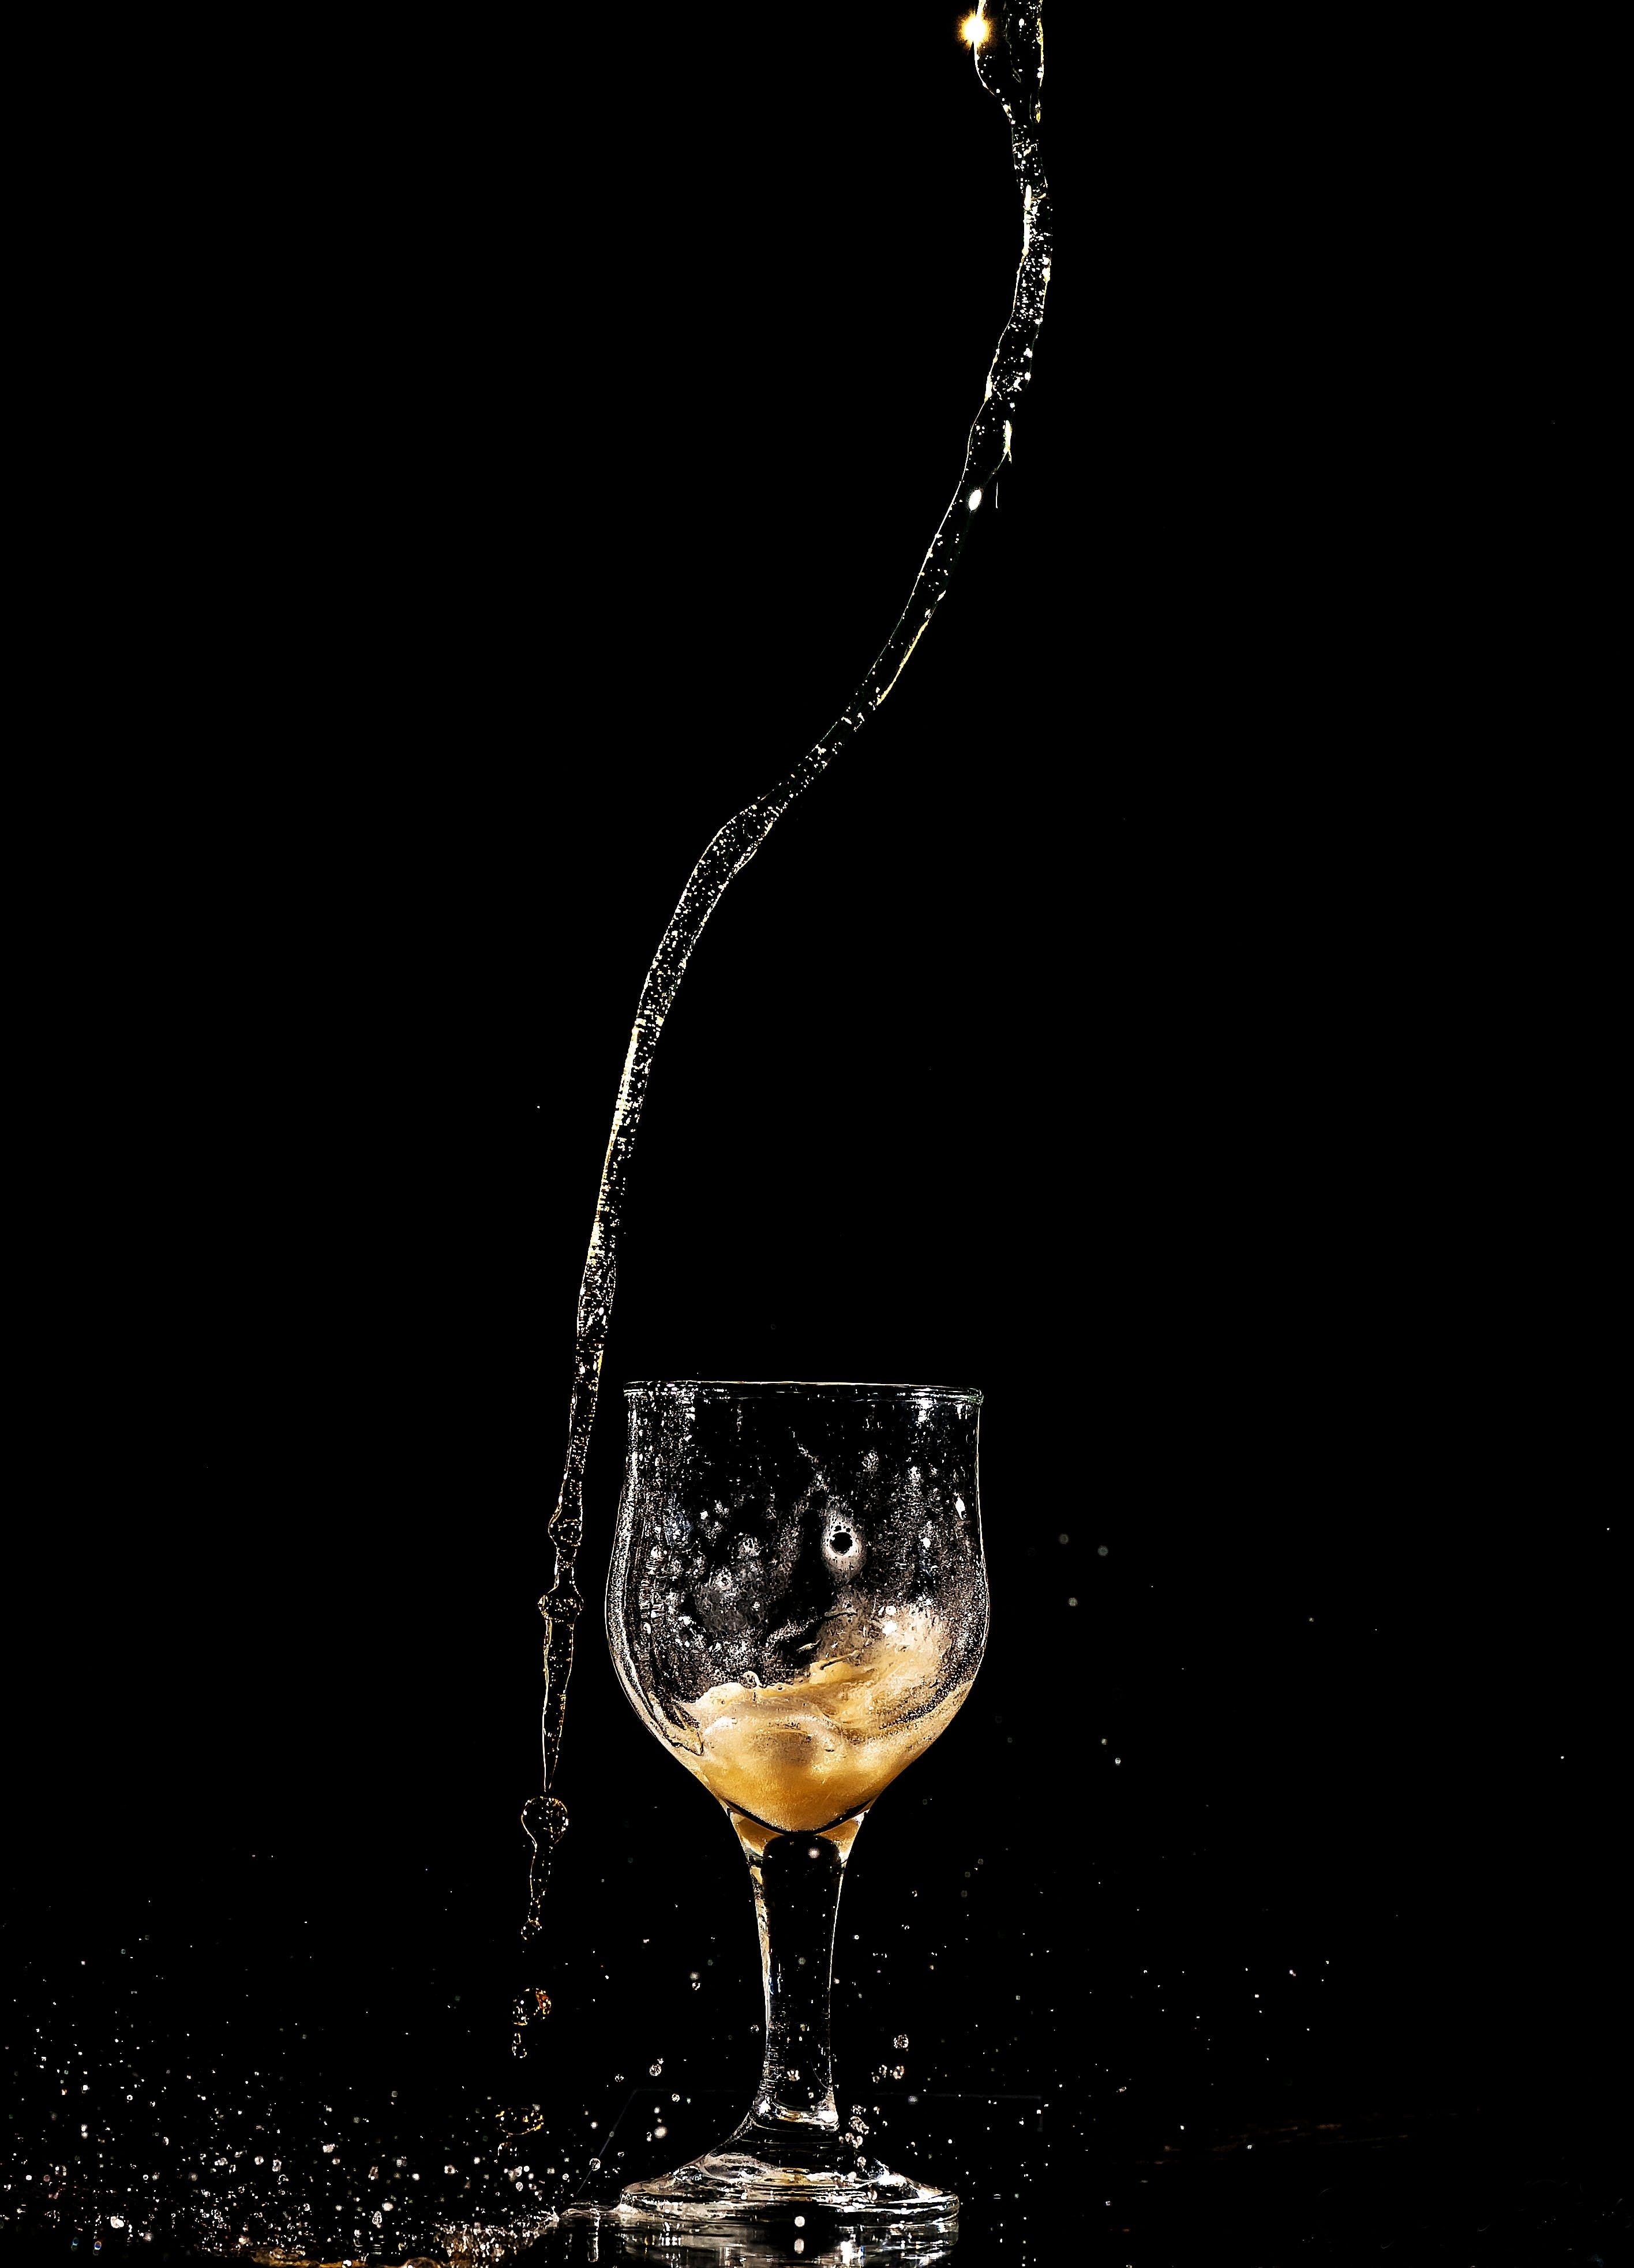 Photo of Liquid Pouring